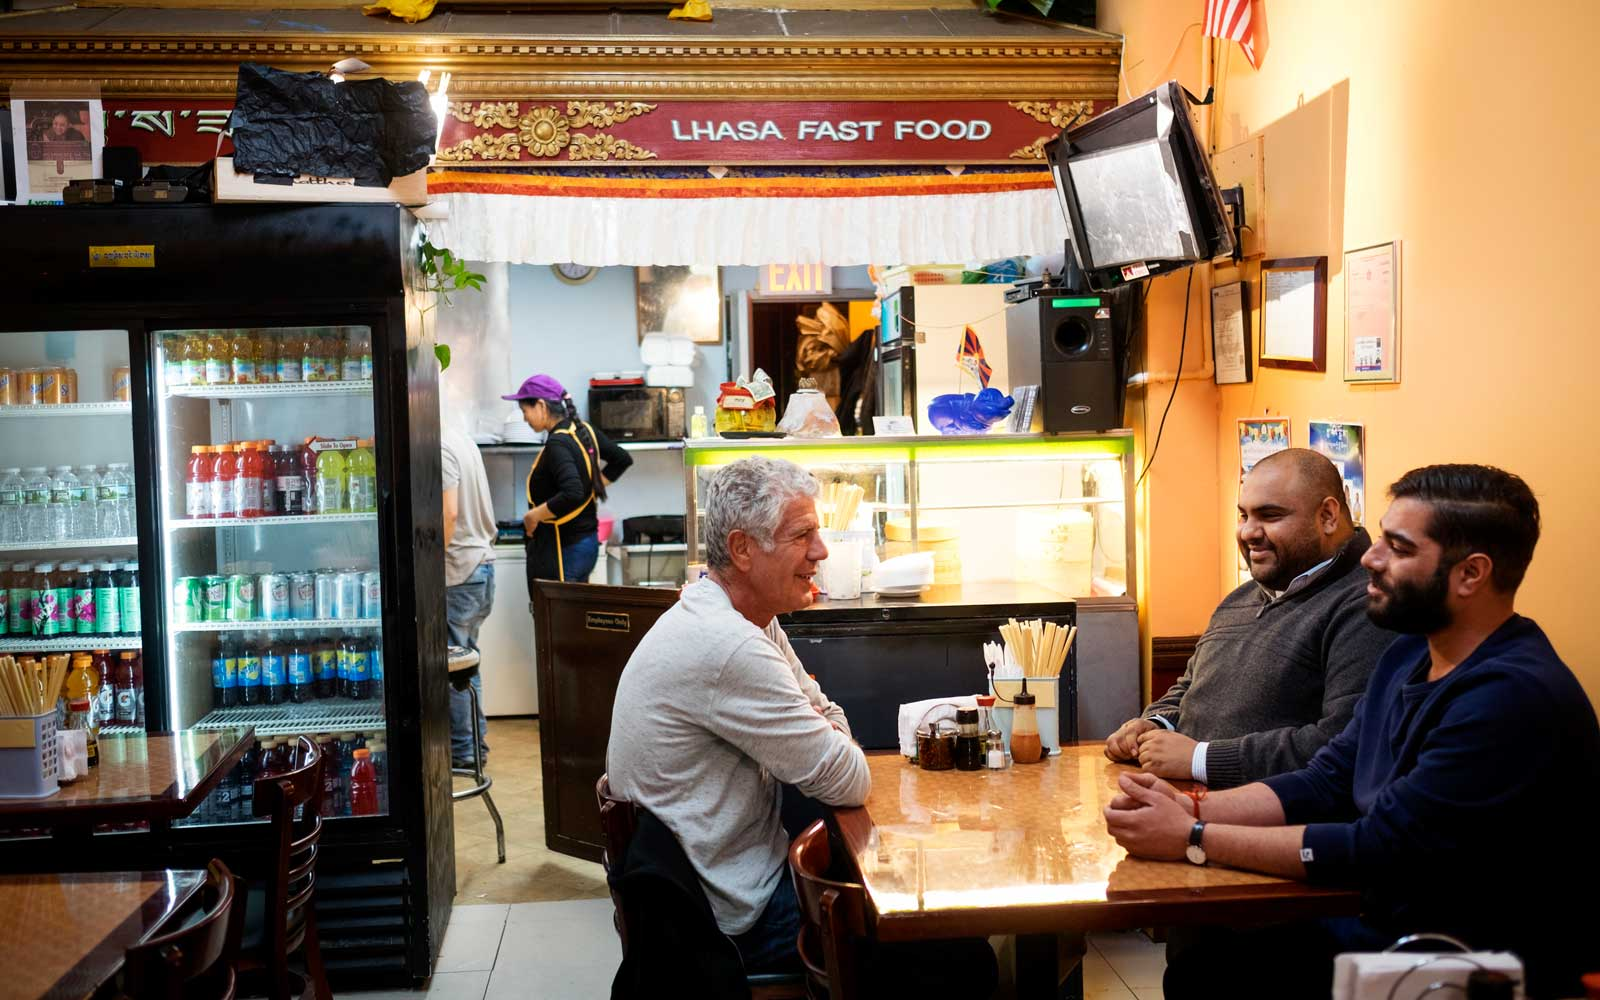 Anthony Bourdain films Parts Unknown Queens in New York, New York on November 11, 2016